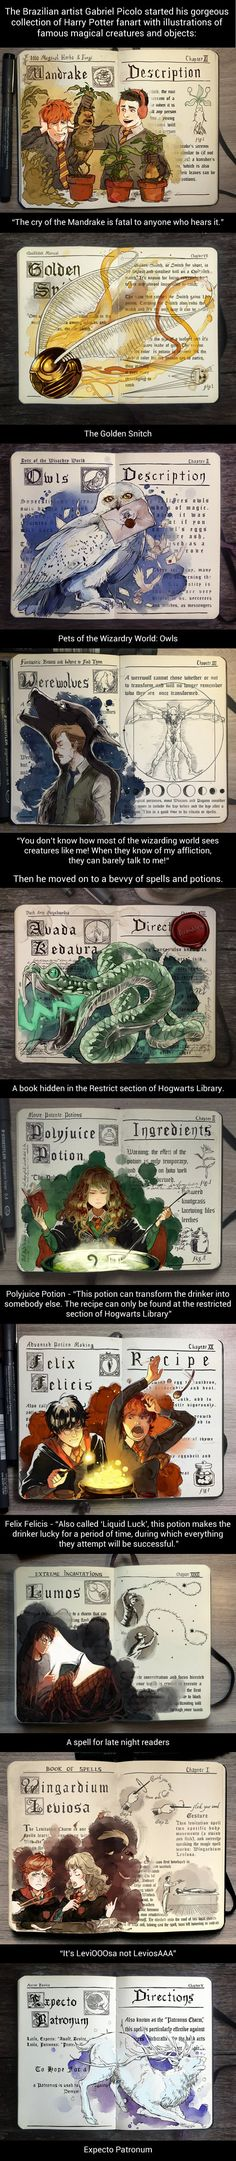 Amazing Illustrations Of Famous Magical Elements And Spells From Harry Potter